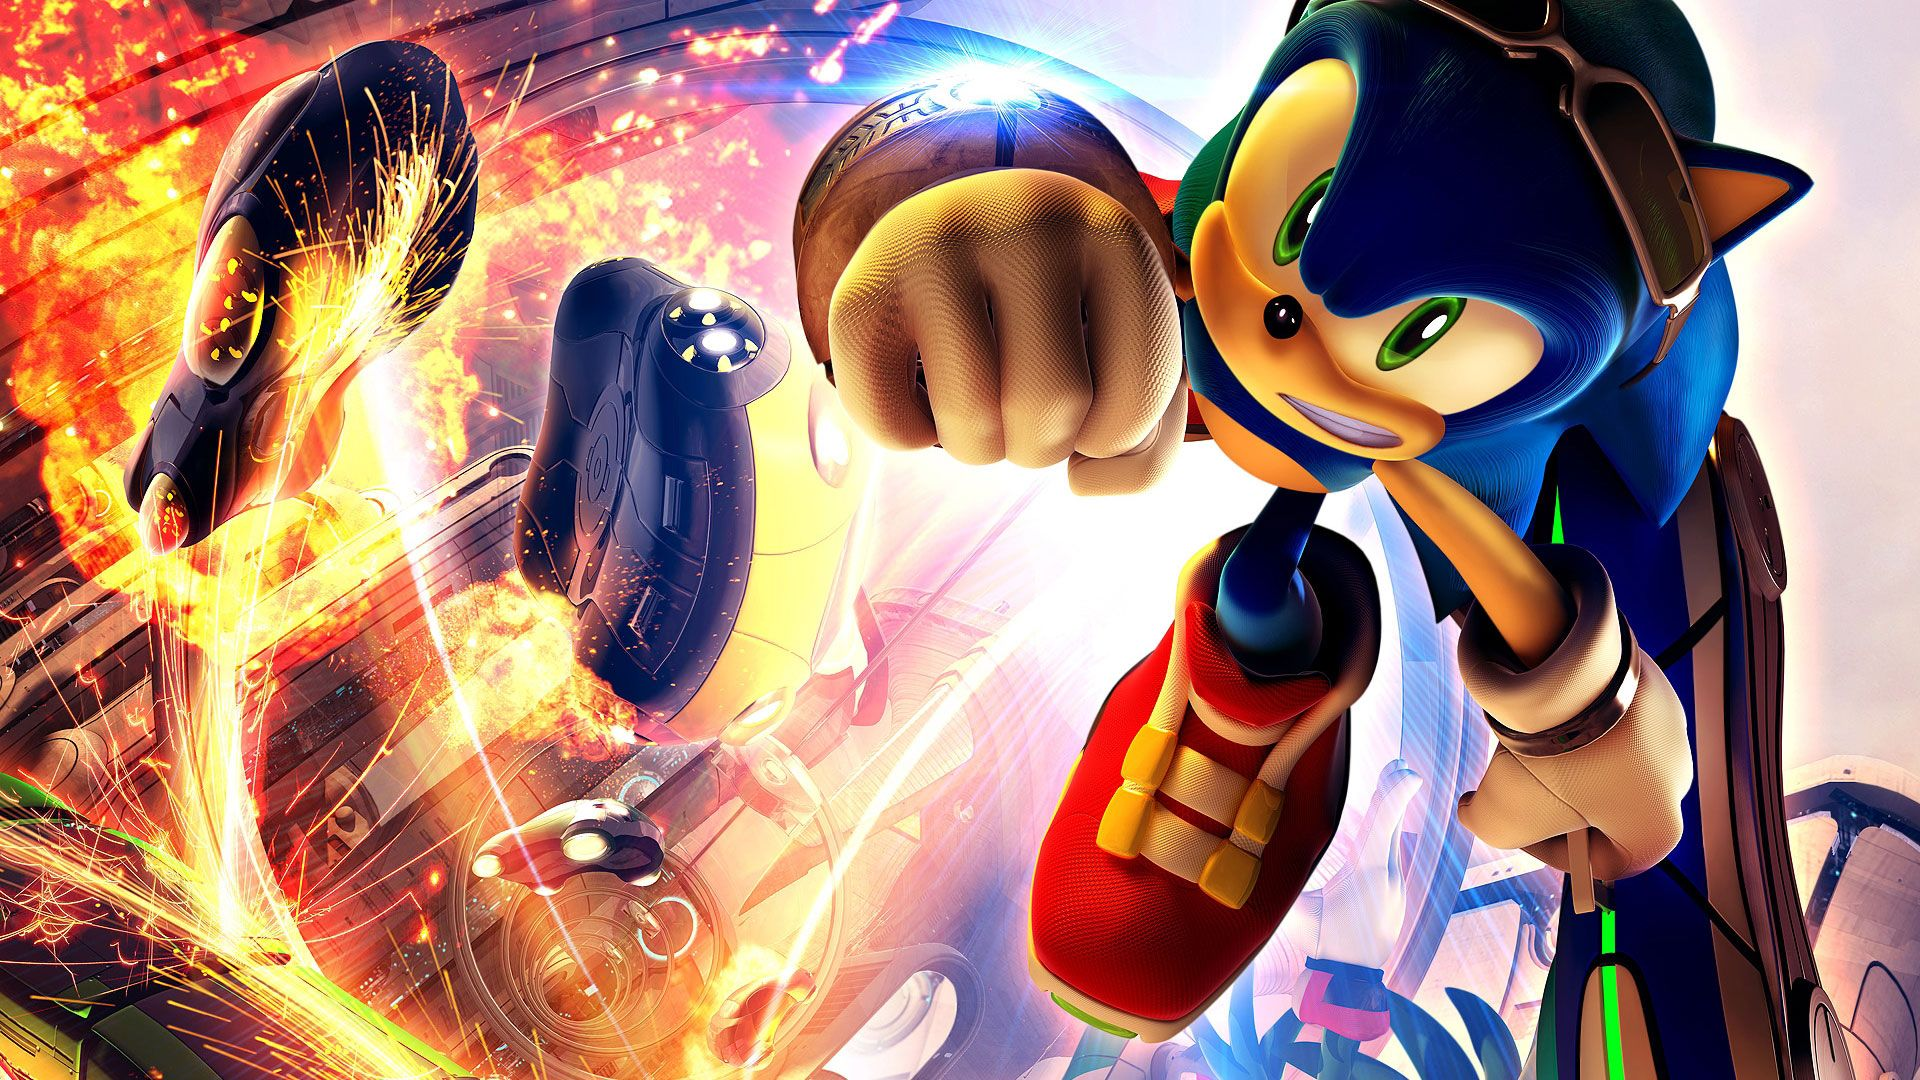 Sonic Riders 1080p Game Wallpapers Hd Wallpapers Sonic The Hedgehog Gaming Wallpapers Cartoon Wallpaper